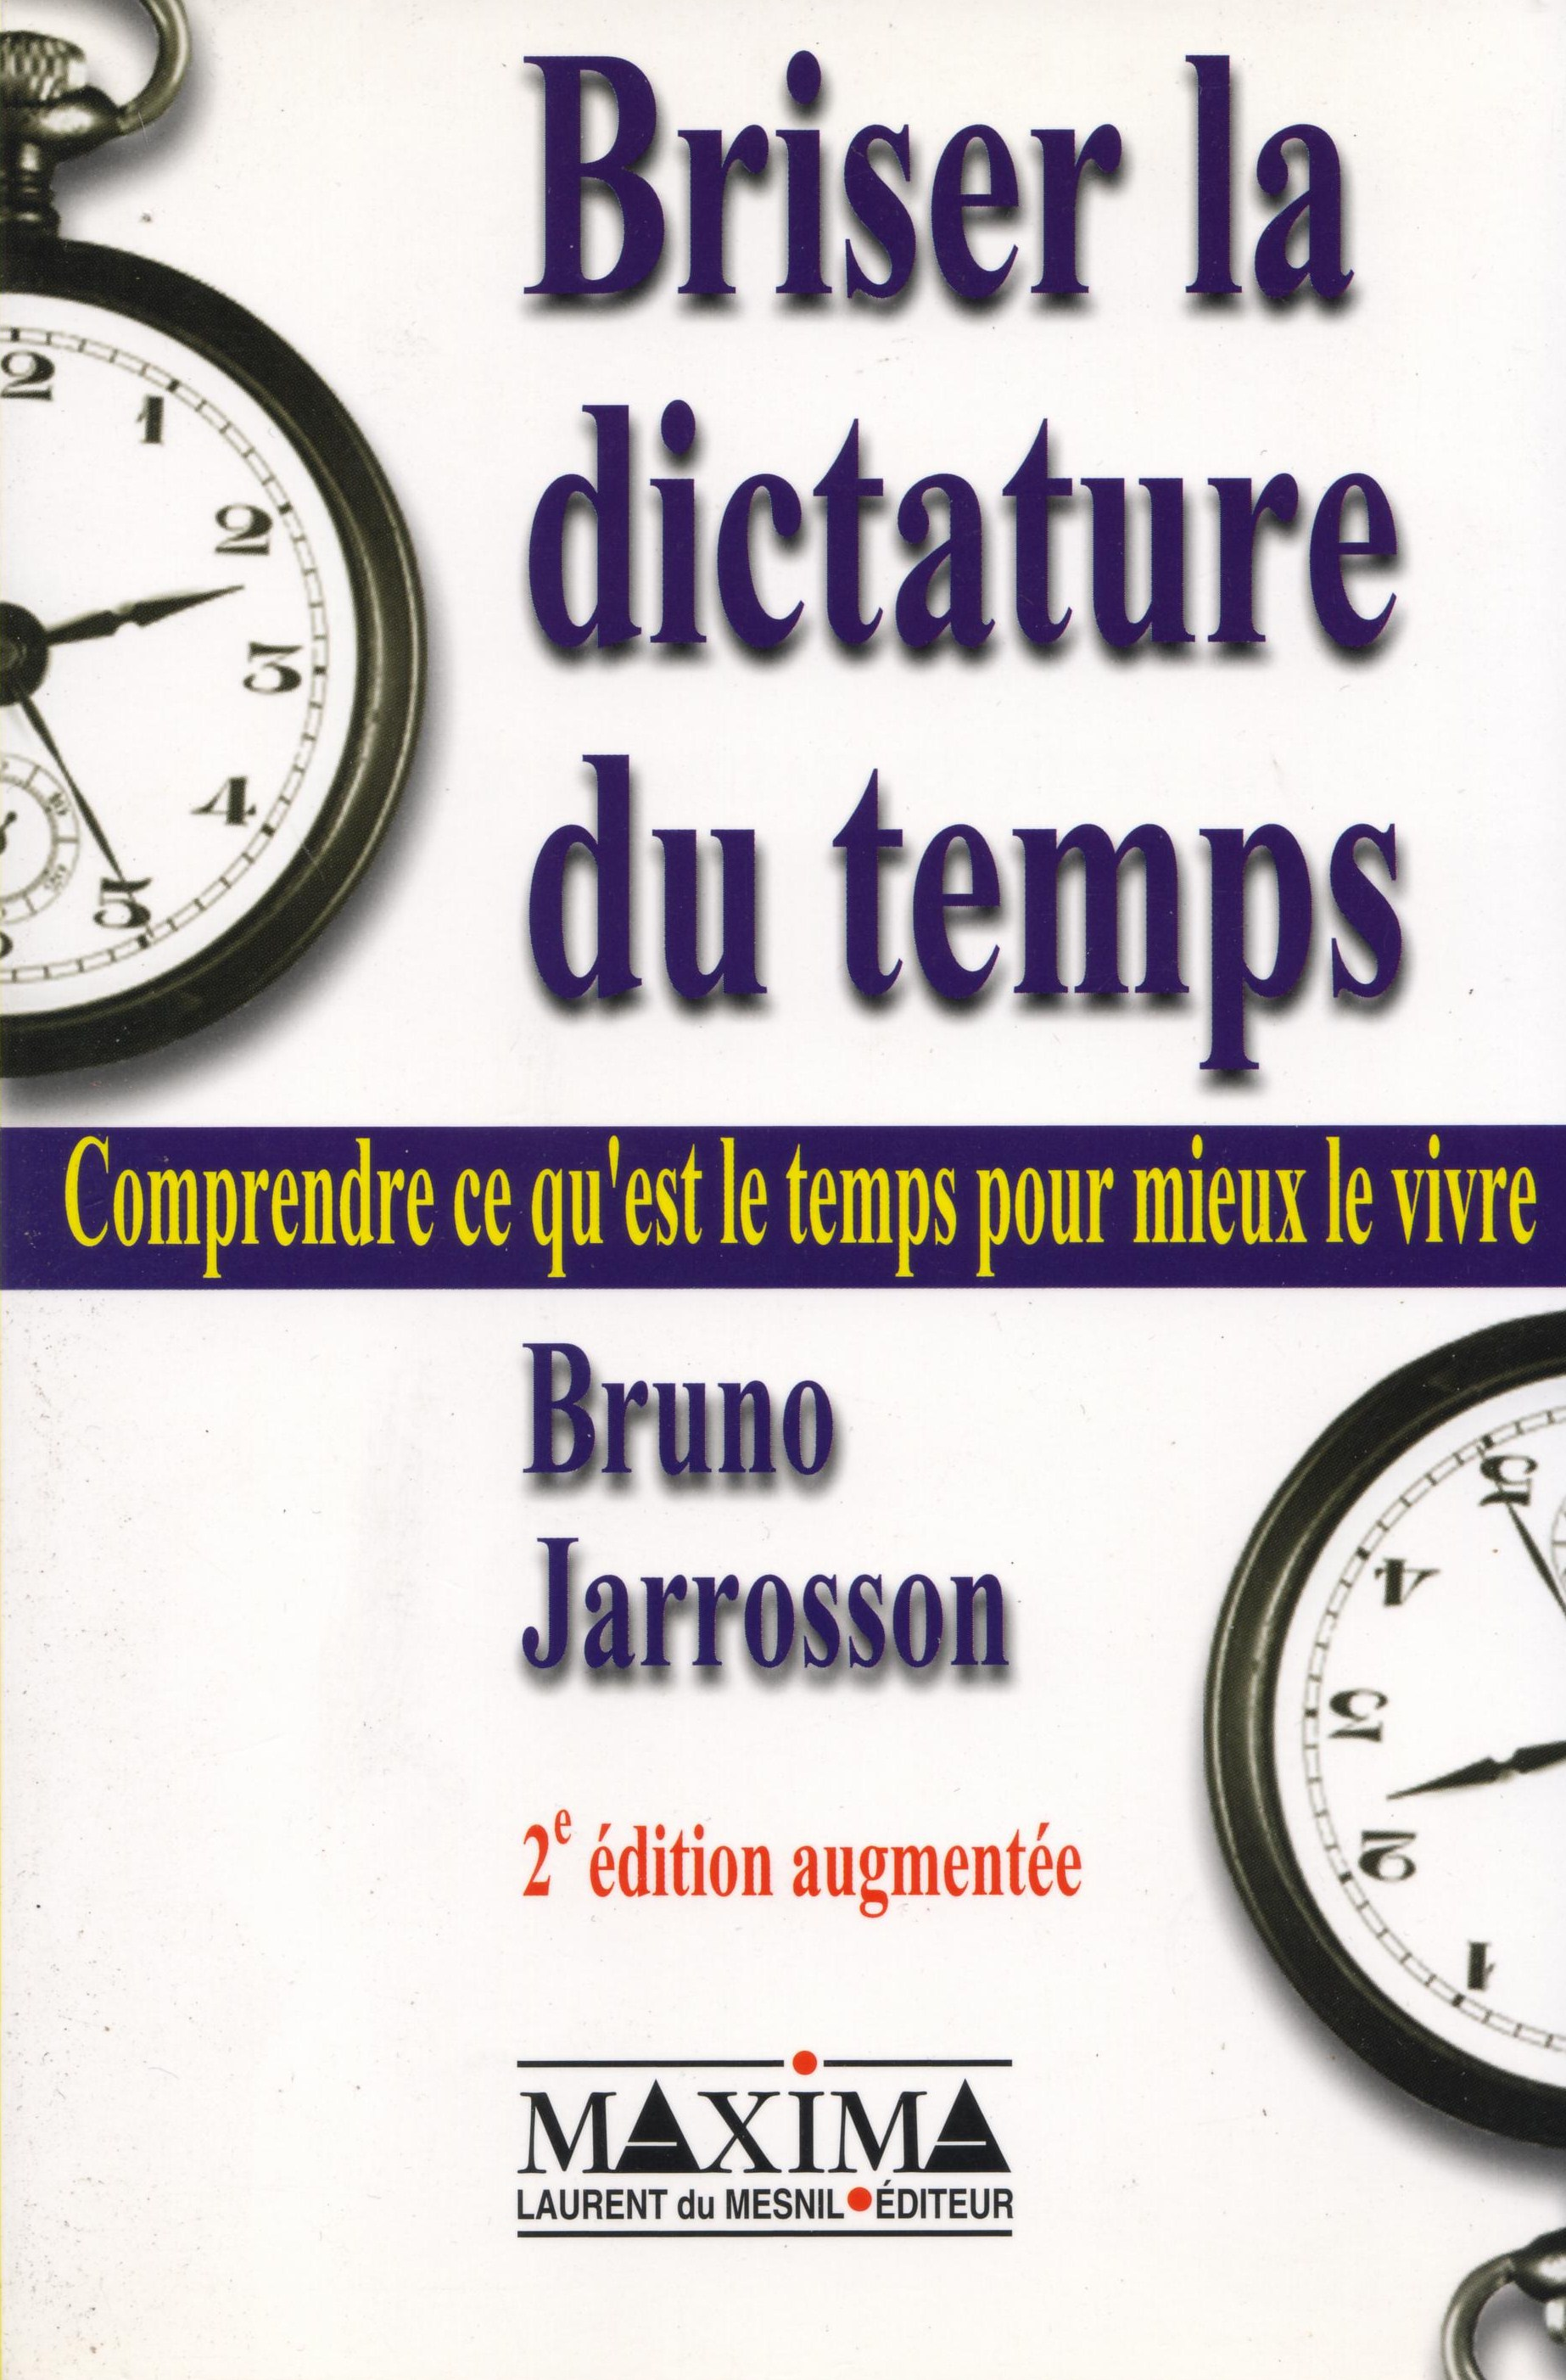 Briser-la-dictature-du-temps